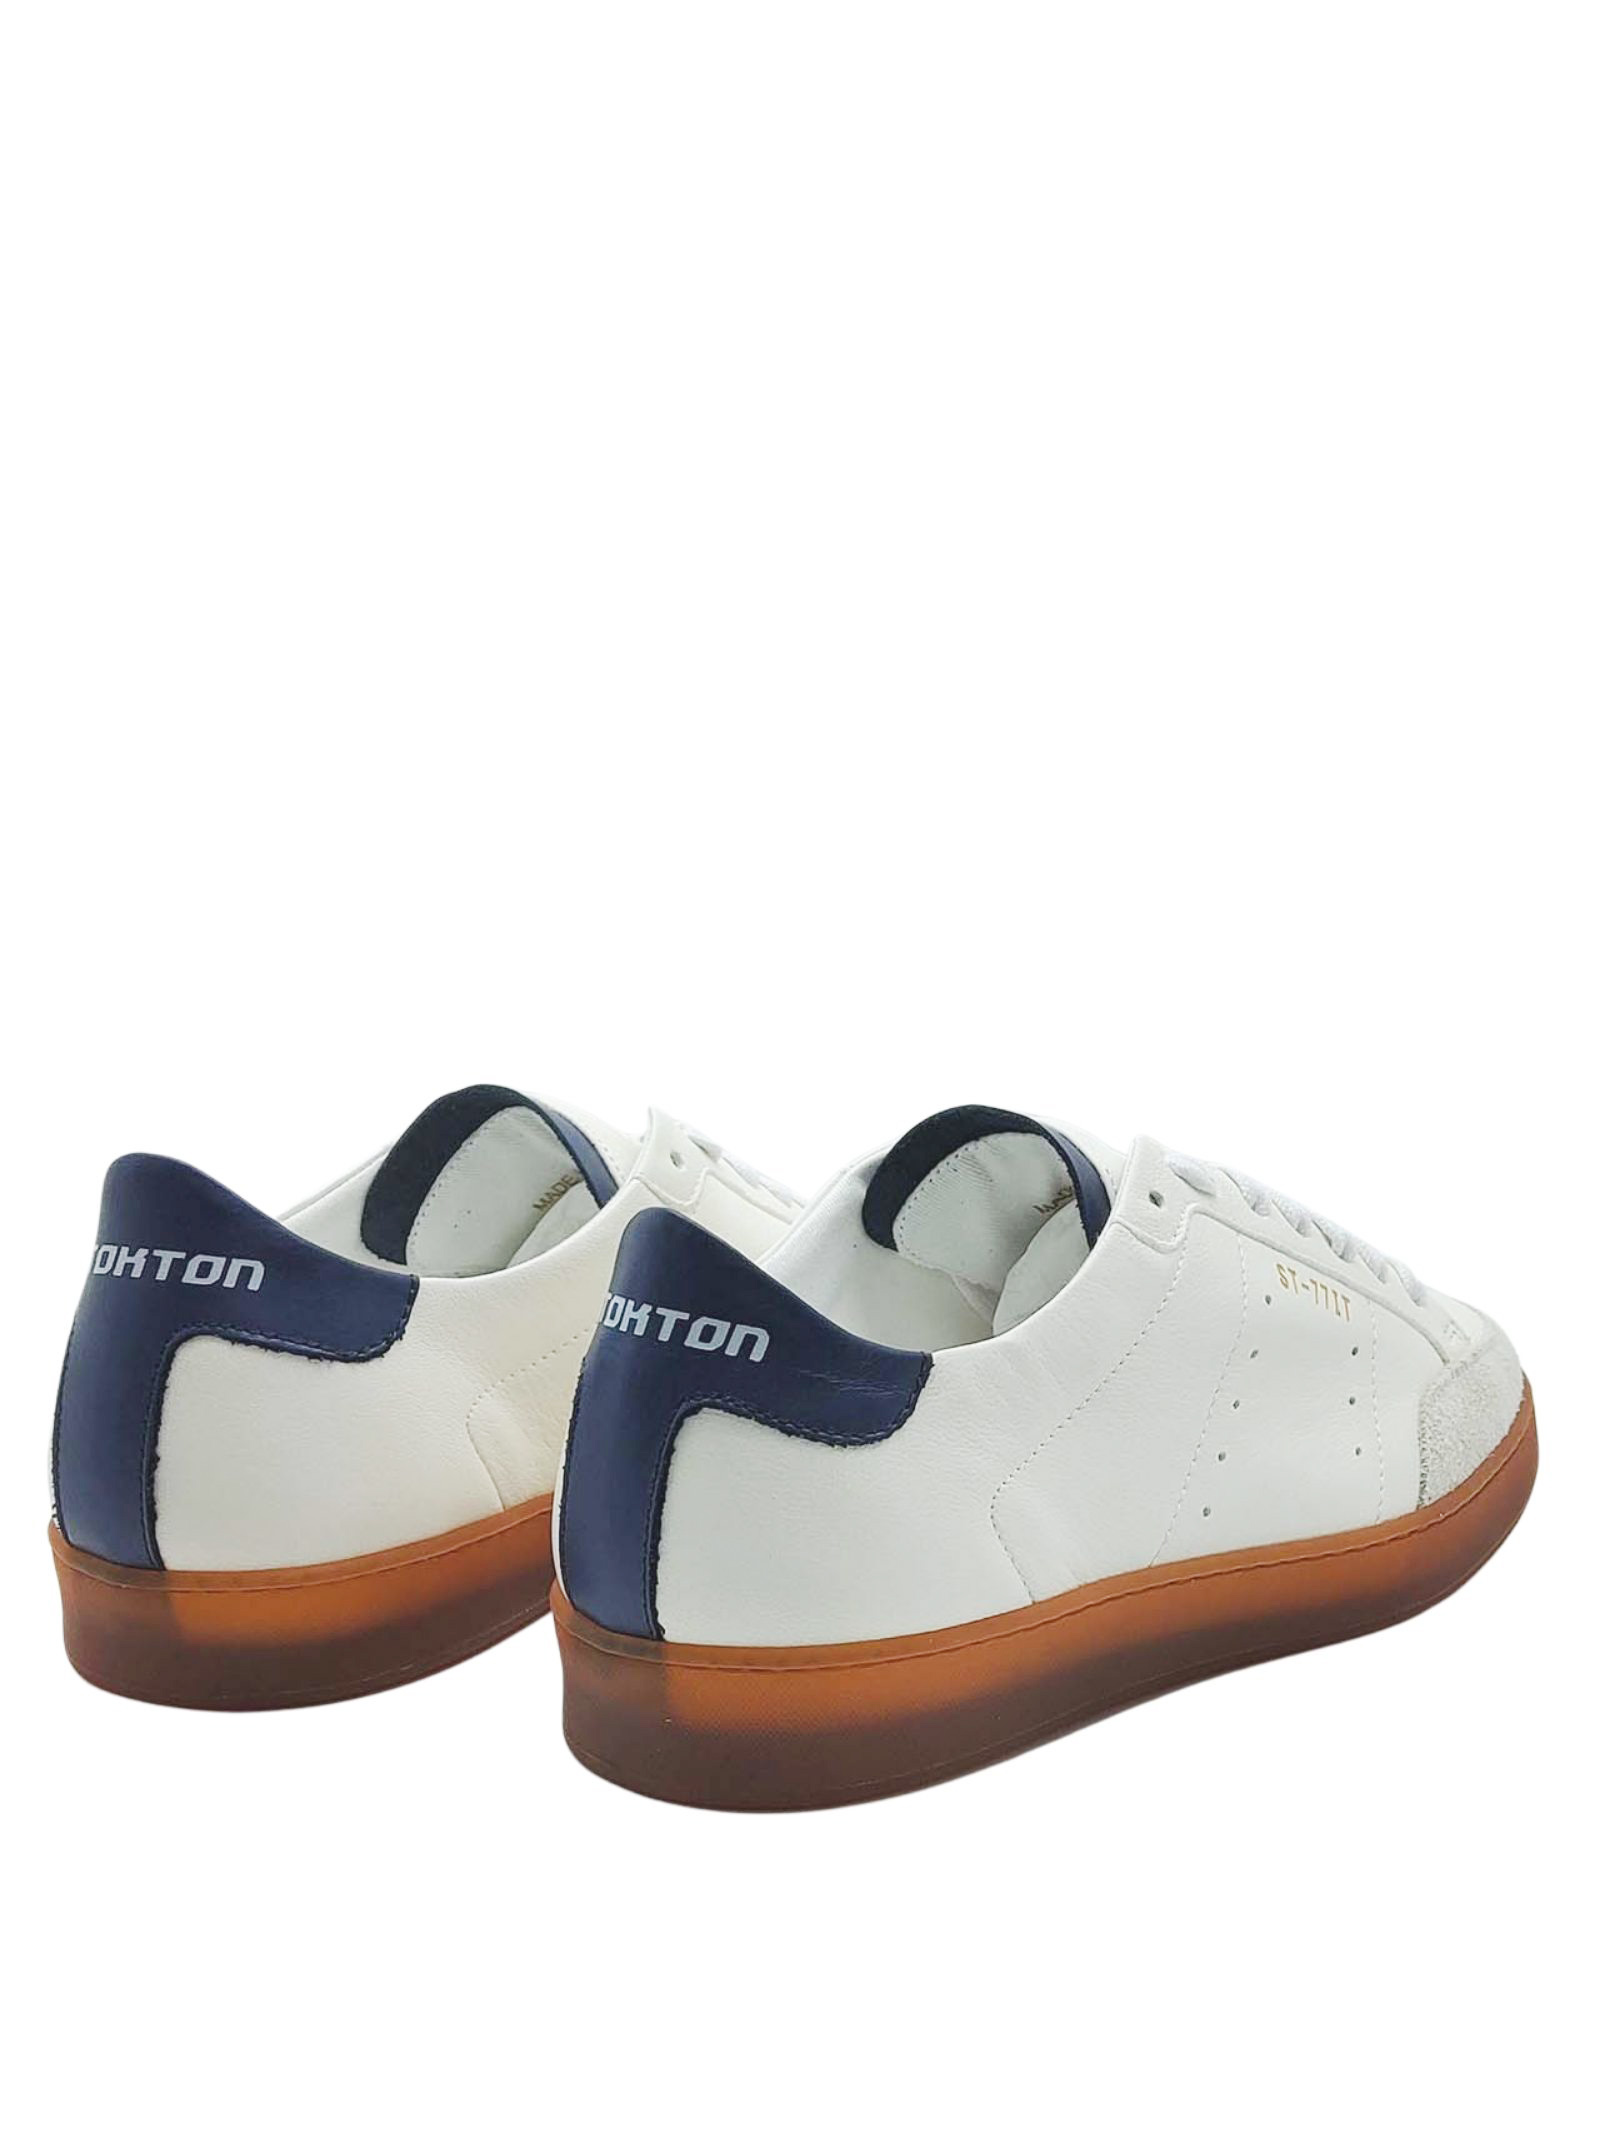 Men's Shoes Sneakers Off White in Leather and Suede and Vintage Honey Rubber Bottom Stokton   Sneakers   NOHA100